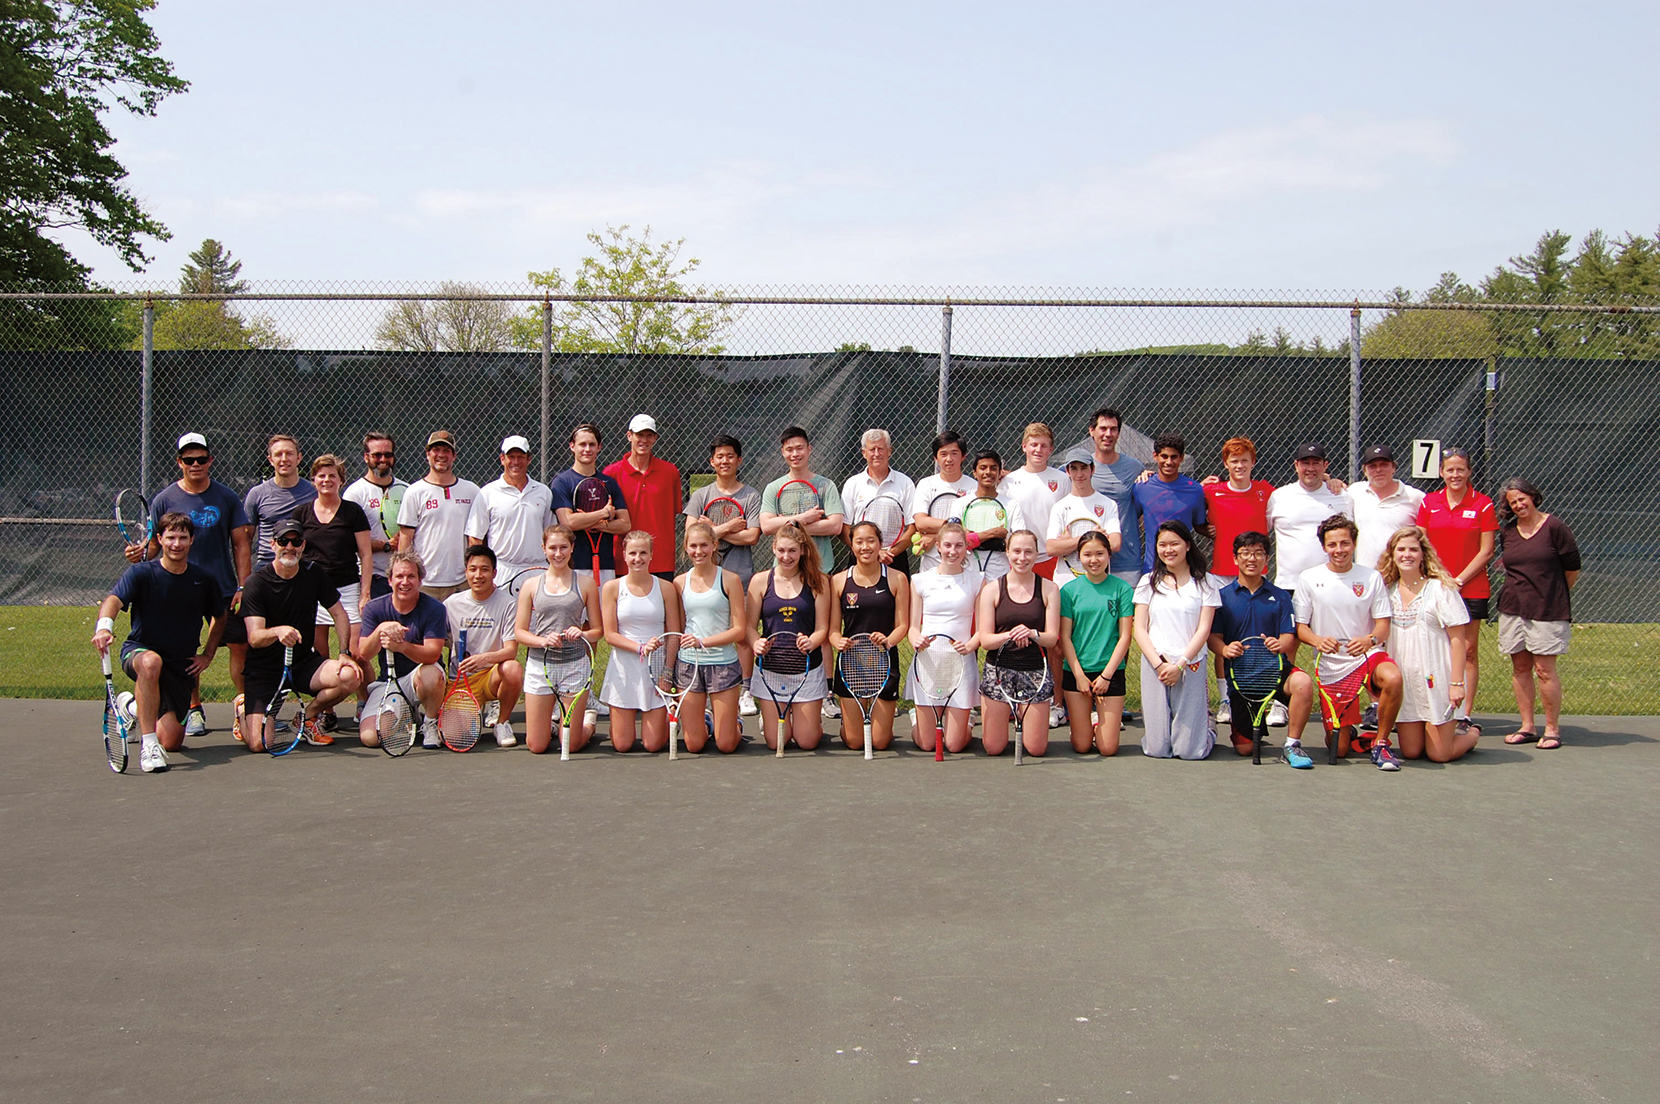 TENNIS PARTICIPANTS: Pete Bostwick '74, Clay Yonce '82, Matt Bell '89, Alice Campbell '89, Dave Leuthold '89, Dennis Lynch '89, Pete McBride '89, Dan Molnar '89, Tom Noe '89, Will Stubbs '89, Lisa Tilney '89, Andrew Fagenholz '94, Taylor Plimpton '94, Philip Warner '94, Jeffrey Bai '14, SJ Kim '14, Sam Yonce '15, Sarah Evenson '17, and Spencer Rowley '18.